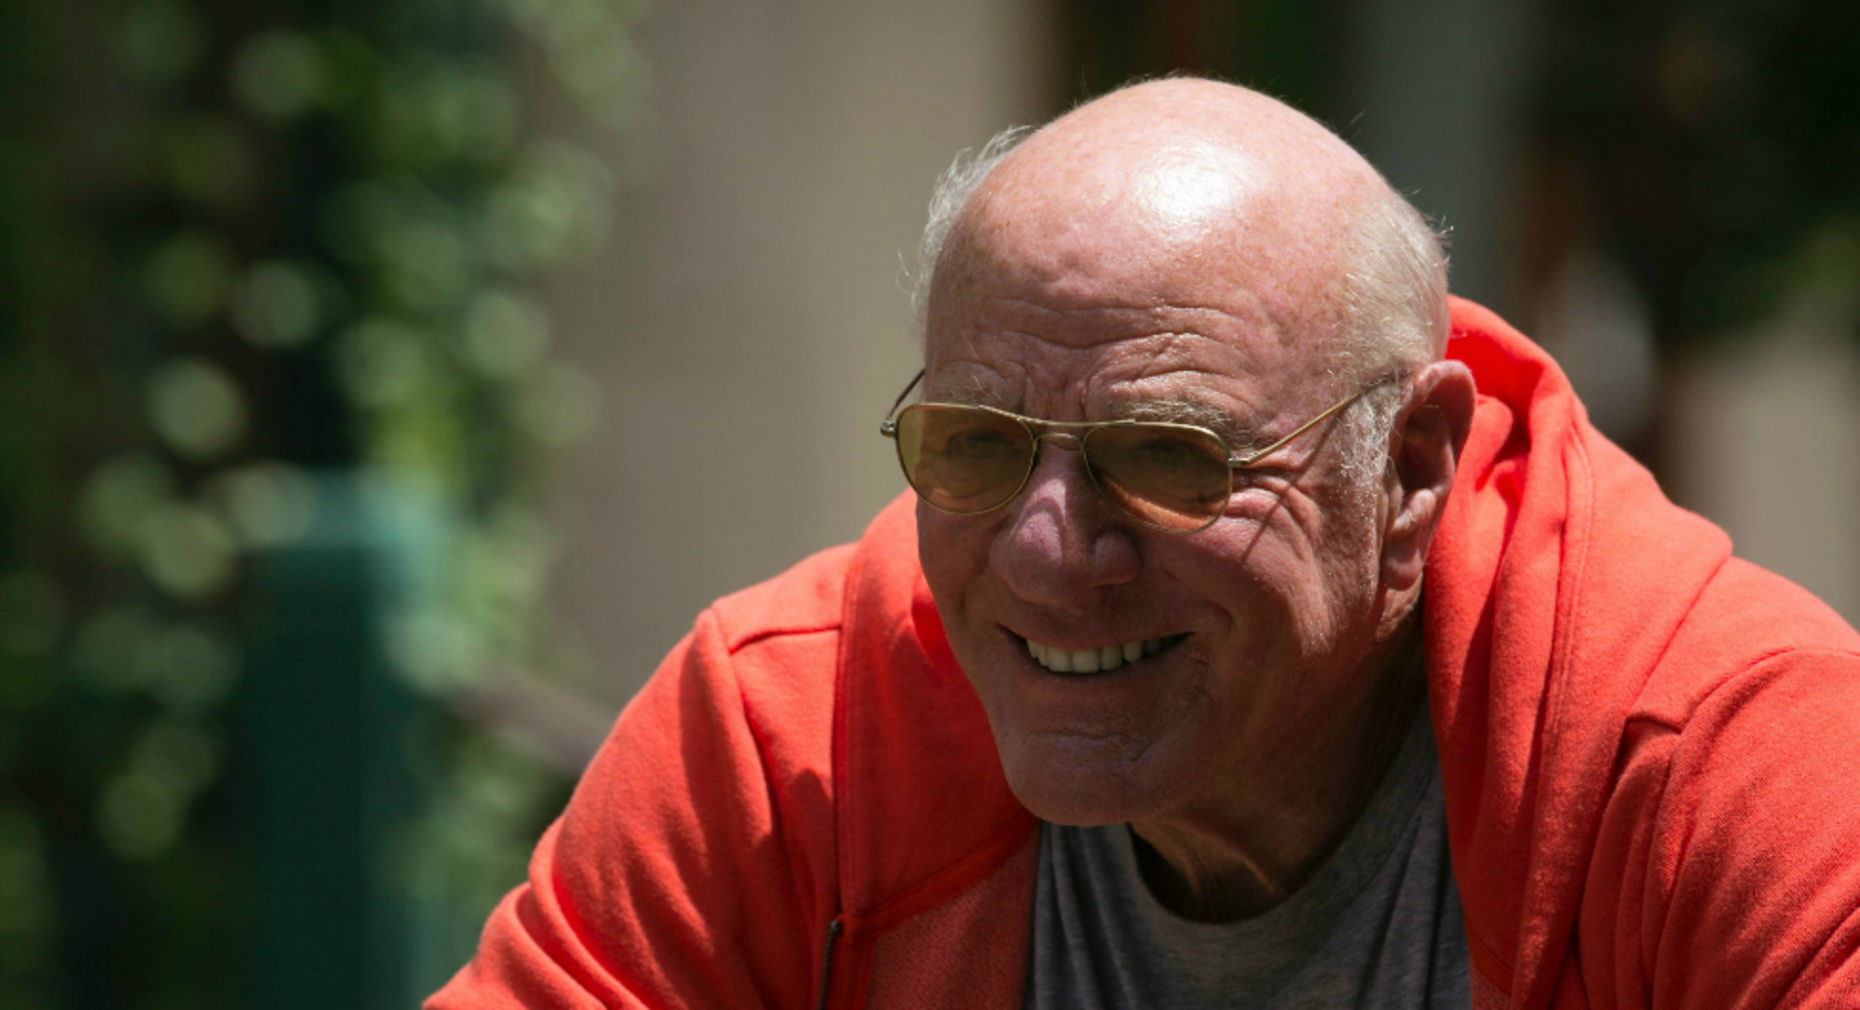 IAC Chairman Barry Diller. Photo by Bloomberg.